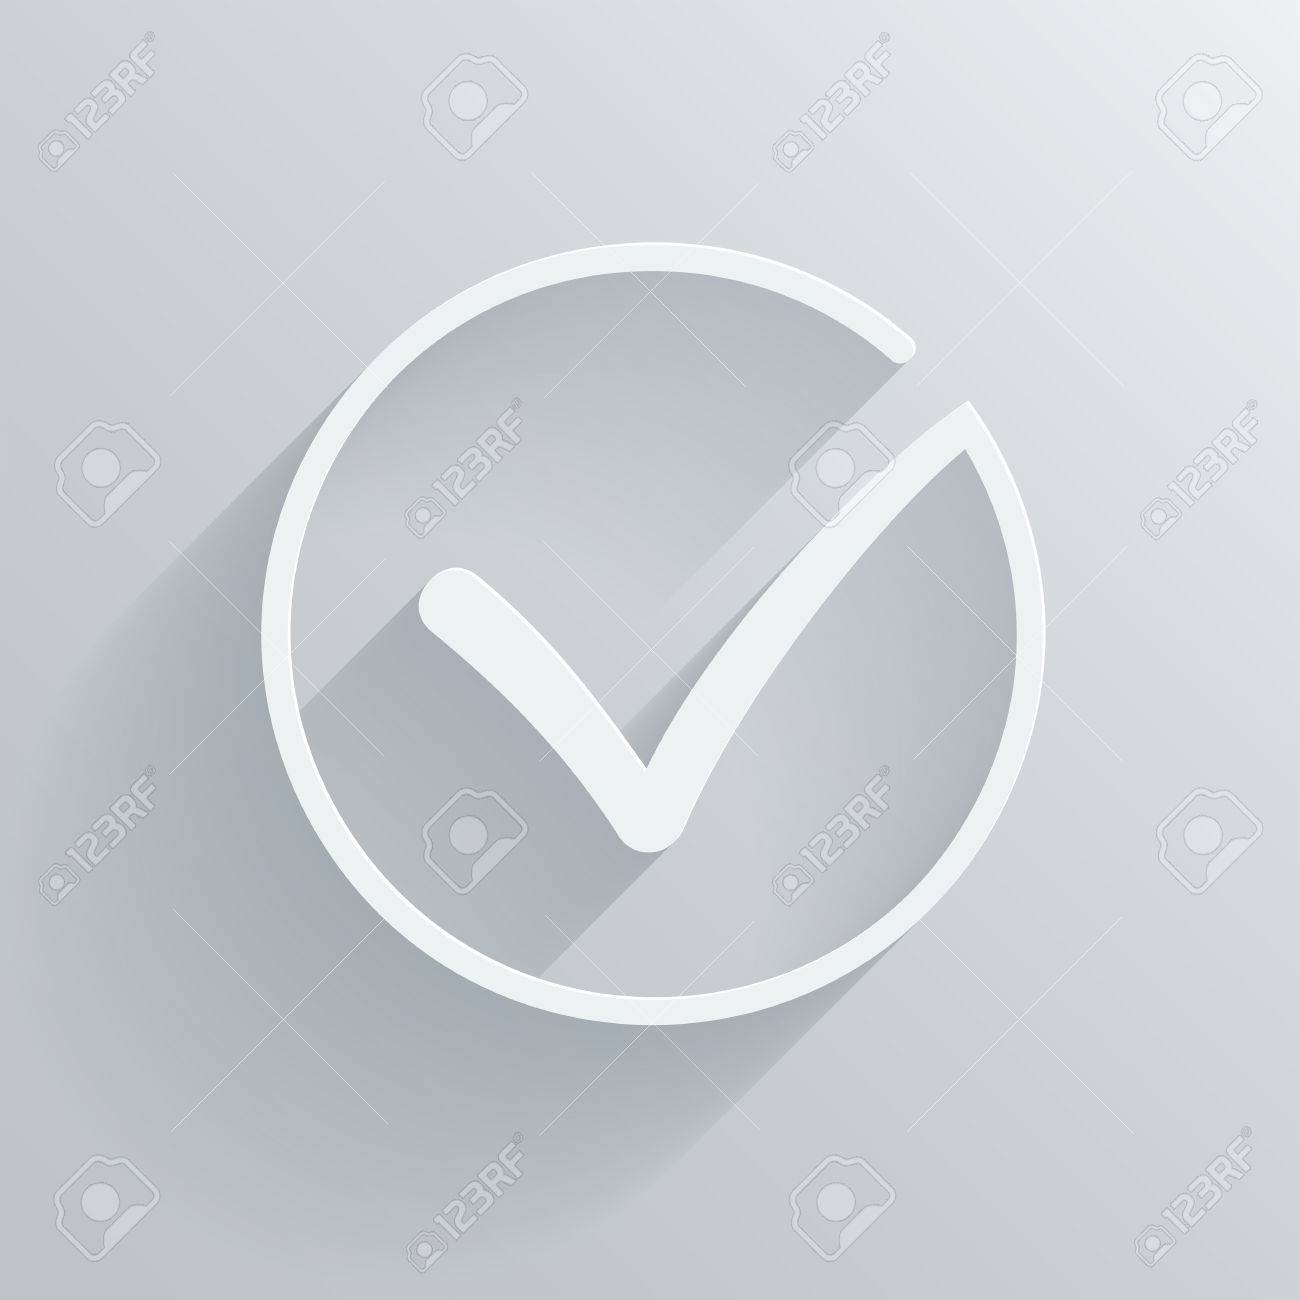 Different Grey And White Vector Check Mark Or Tick In Circle